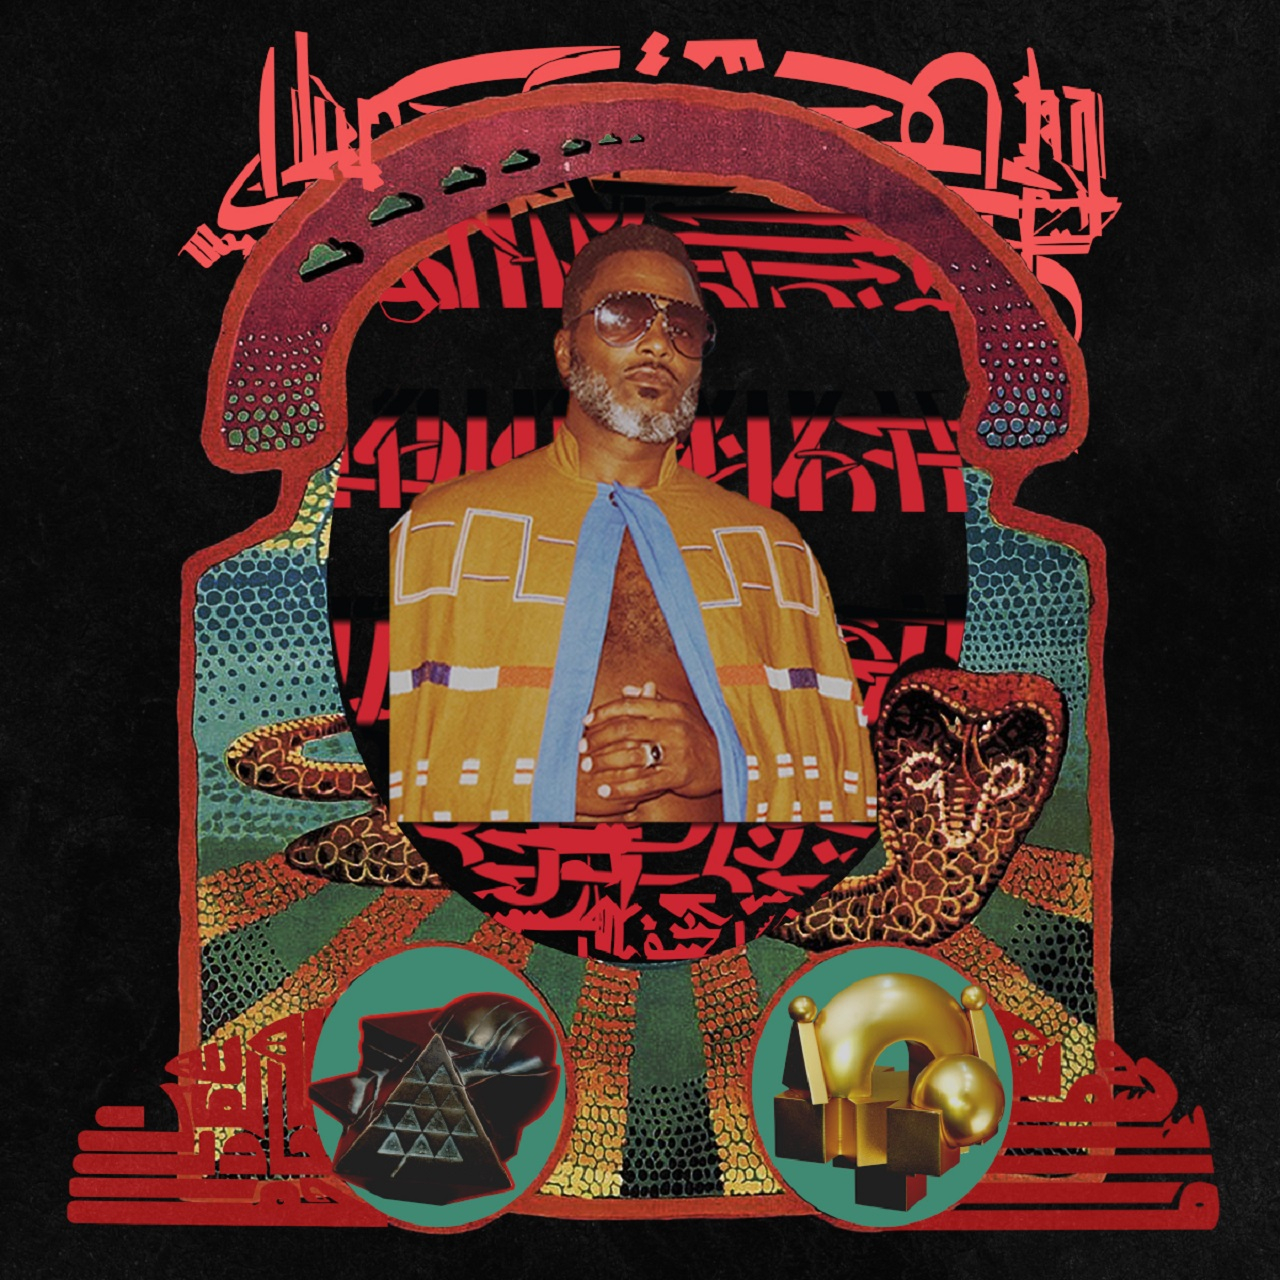 Das neue Shabazz Palaces Album 'The Don Of Diamond Dreams'